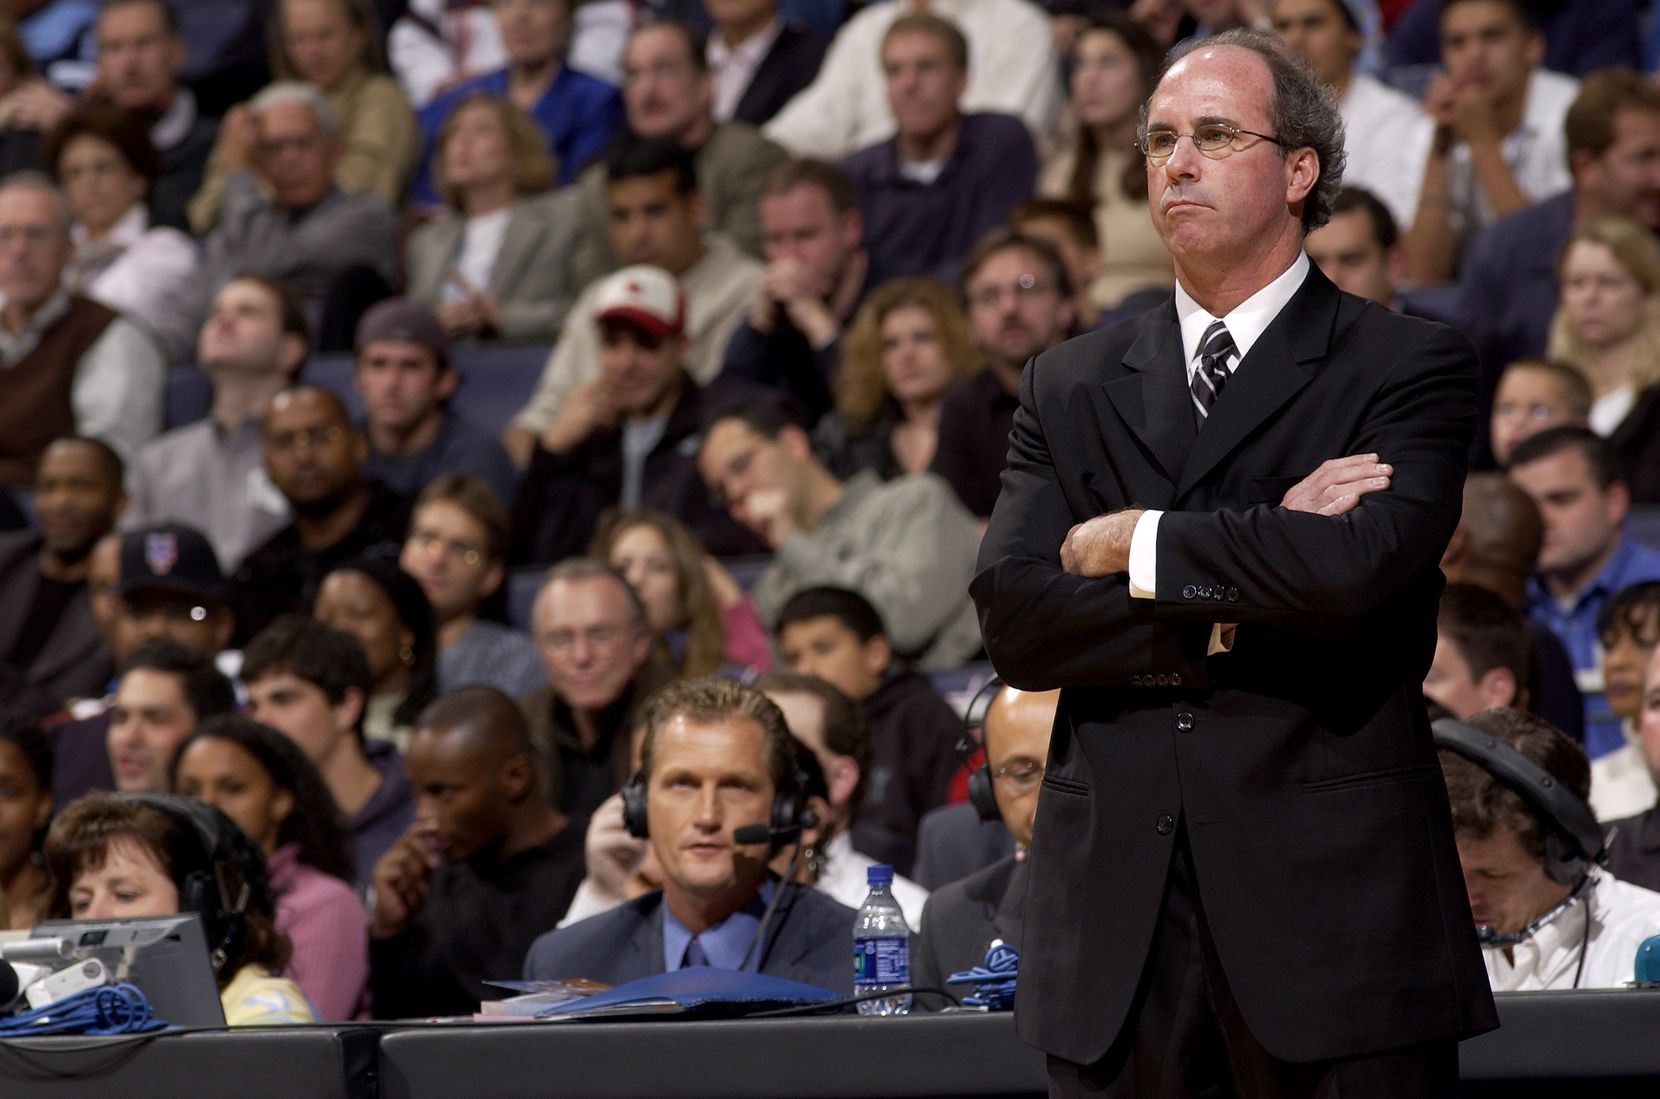 Head Coach Kevin O'Neill watches the game against the Washington Wizards on November 7, 2003 at the MCI Center in Washington, DC.